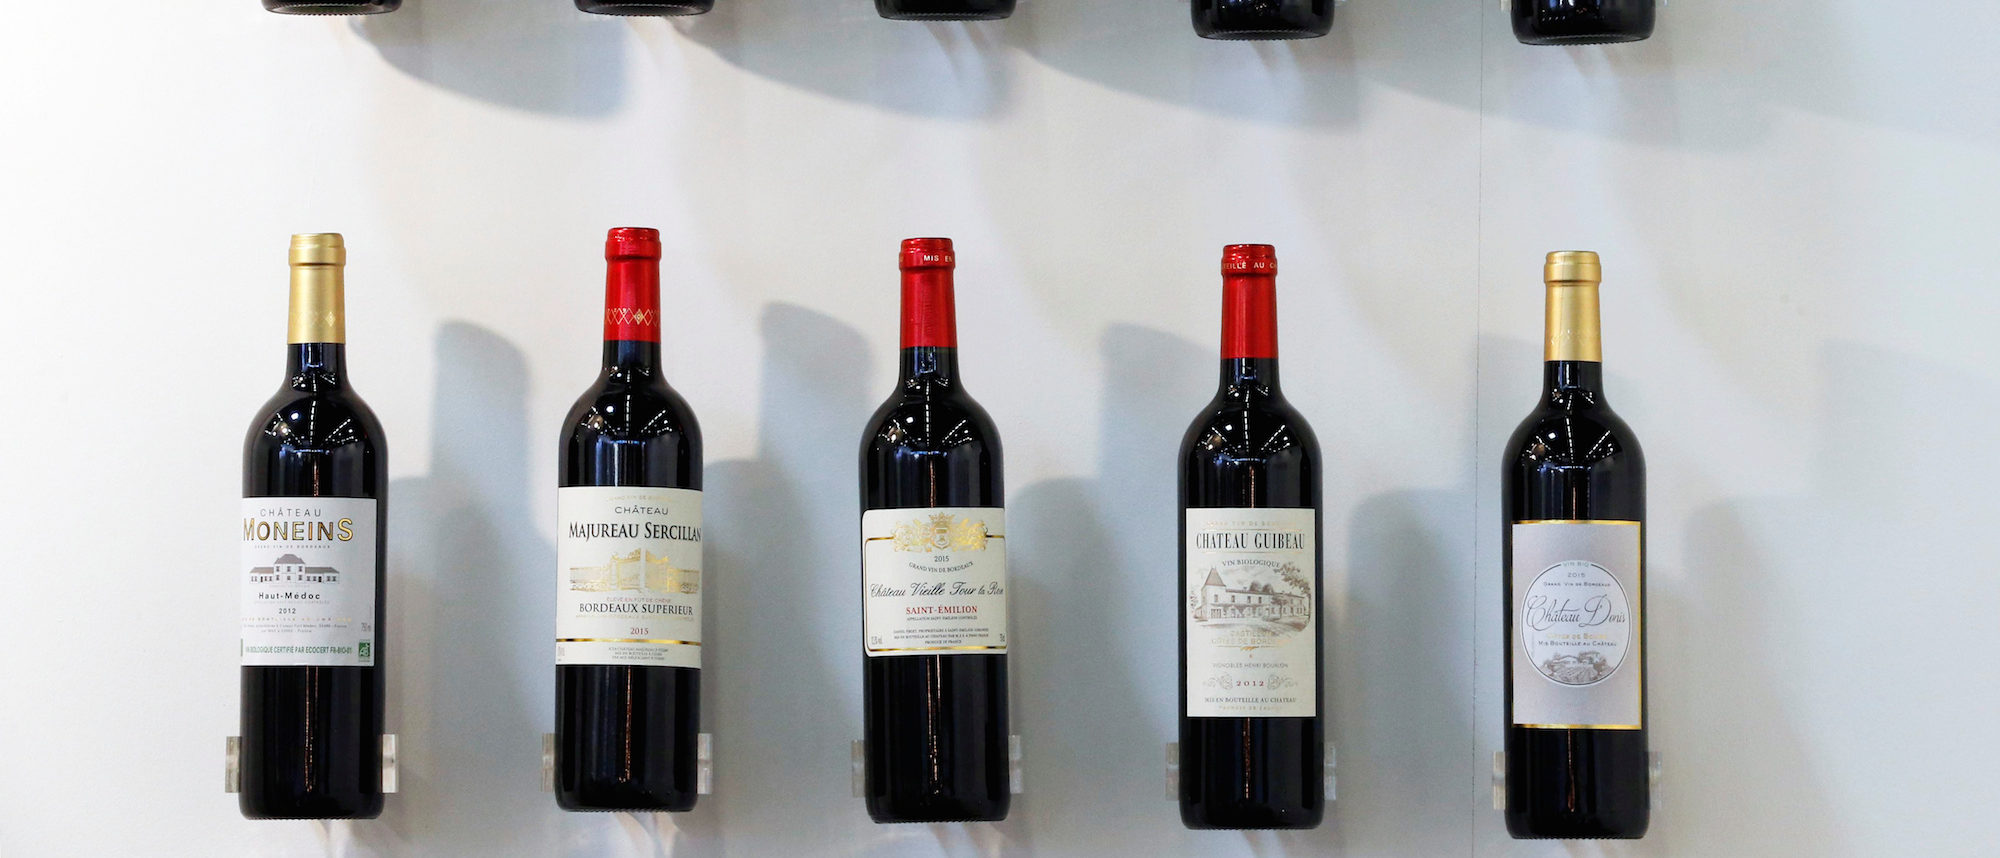 Bottles of red wine are displayed at the wine fair Vinexpo in Bordeaux, southwestern France, June 19, 2017. REUTERS/Regis Duvignau